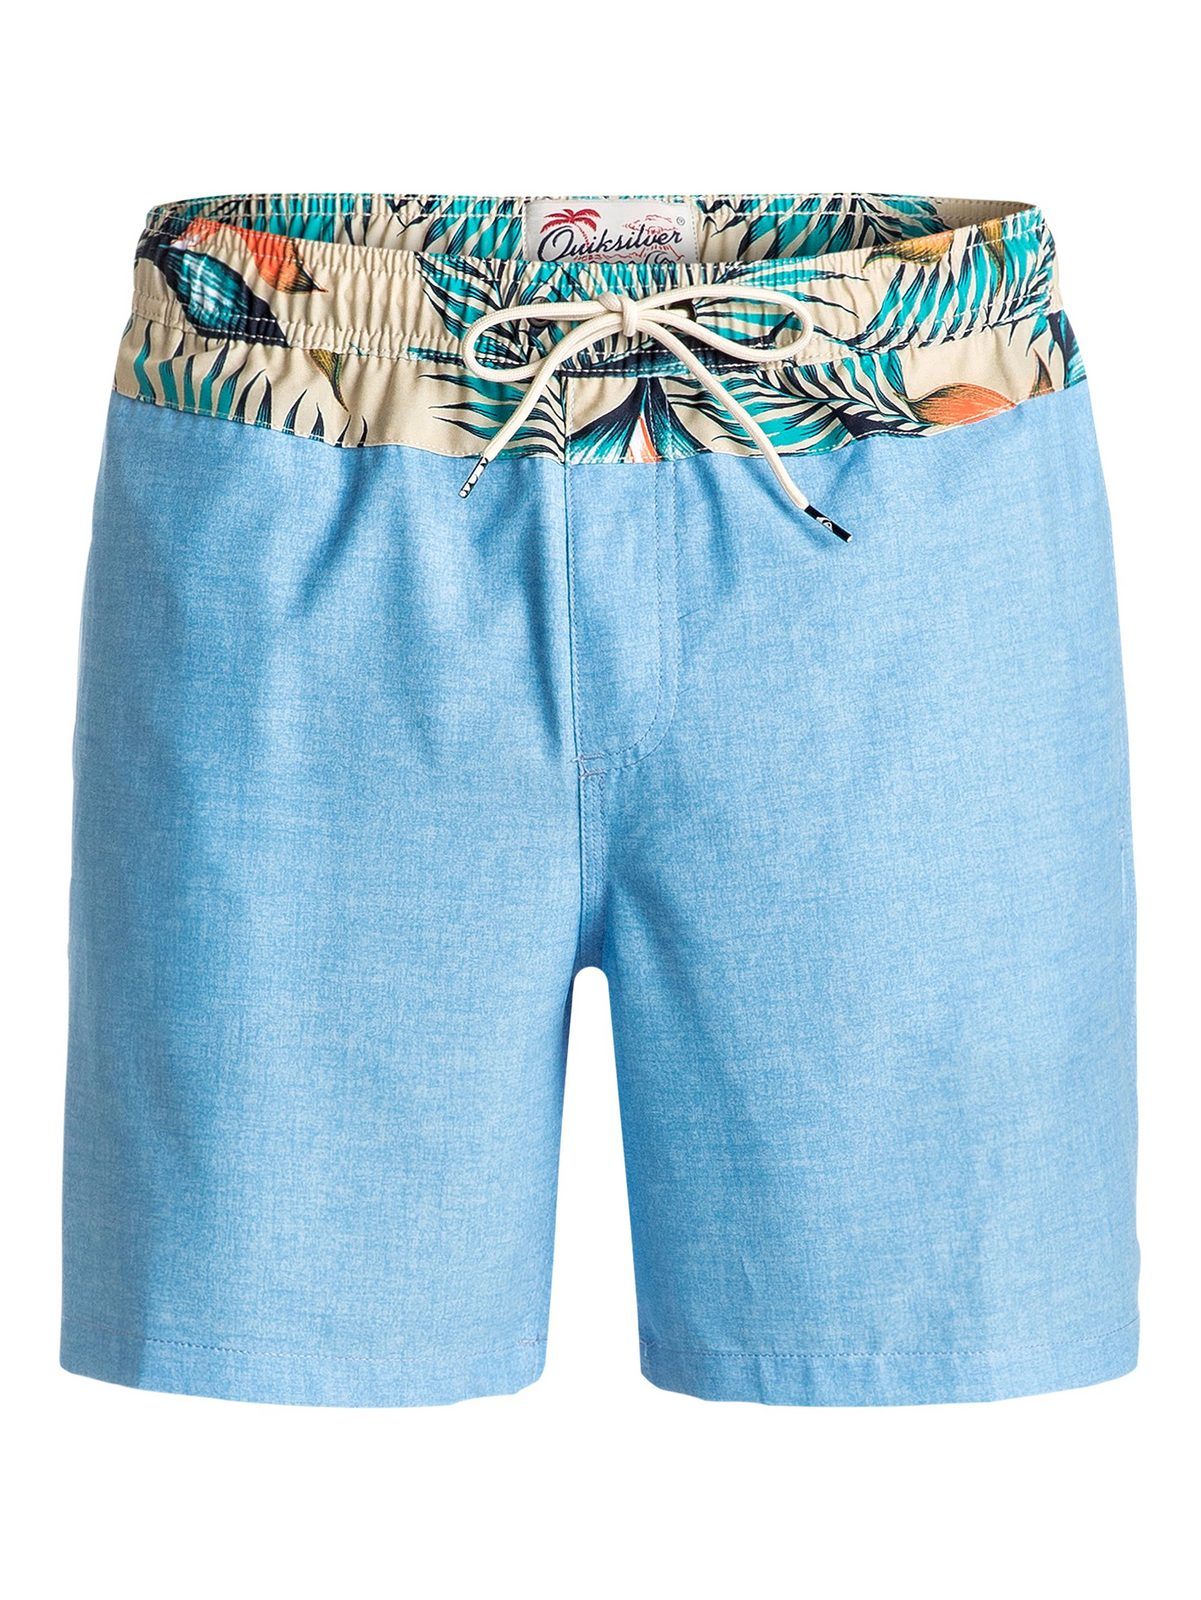 Quiksilver Boardshorts »Inlay 17 - Boardshorts«